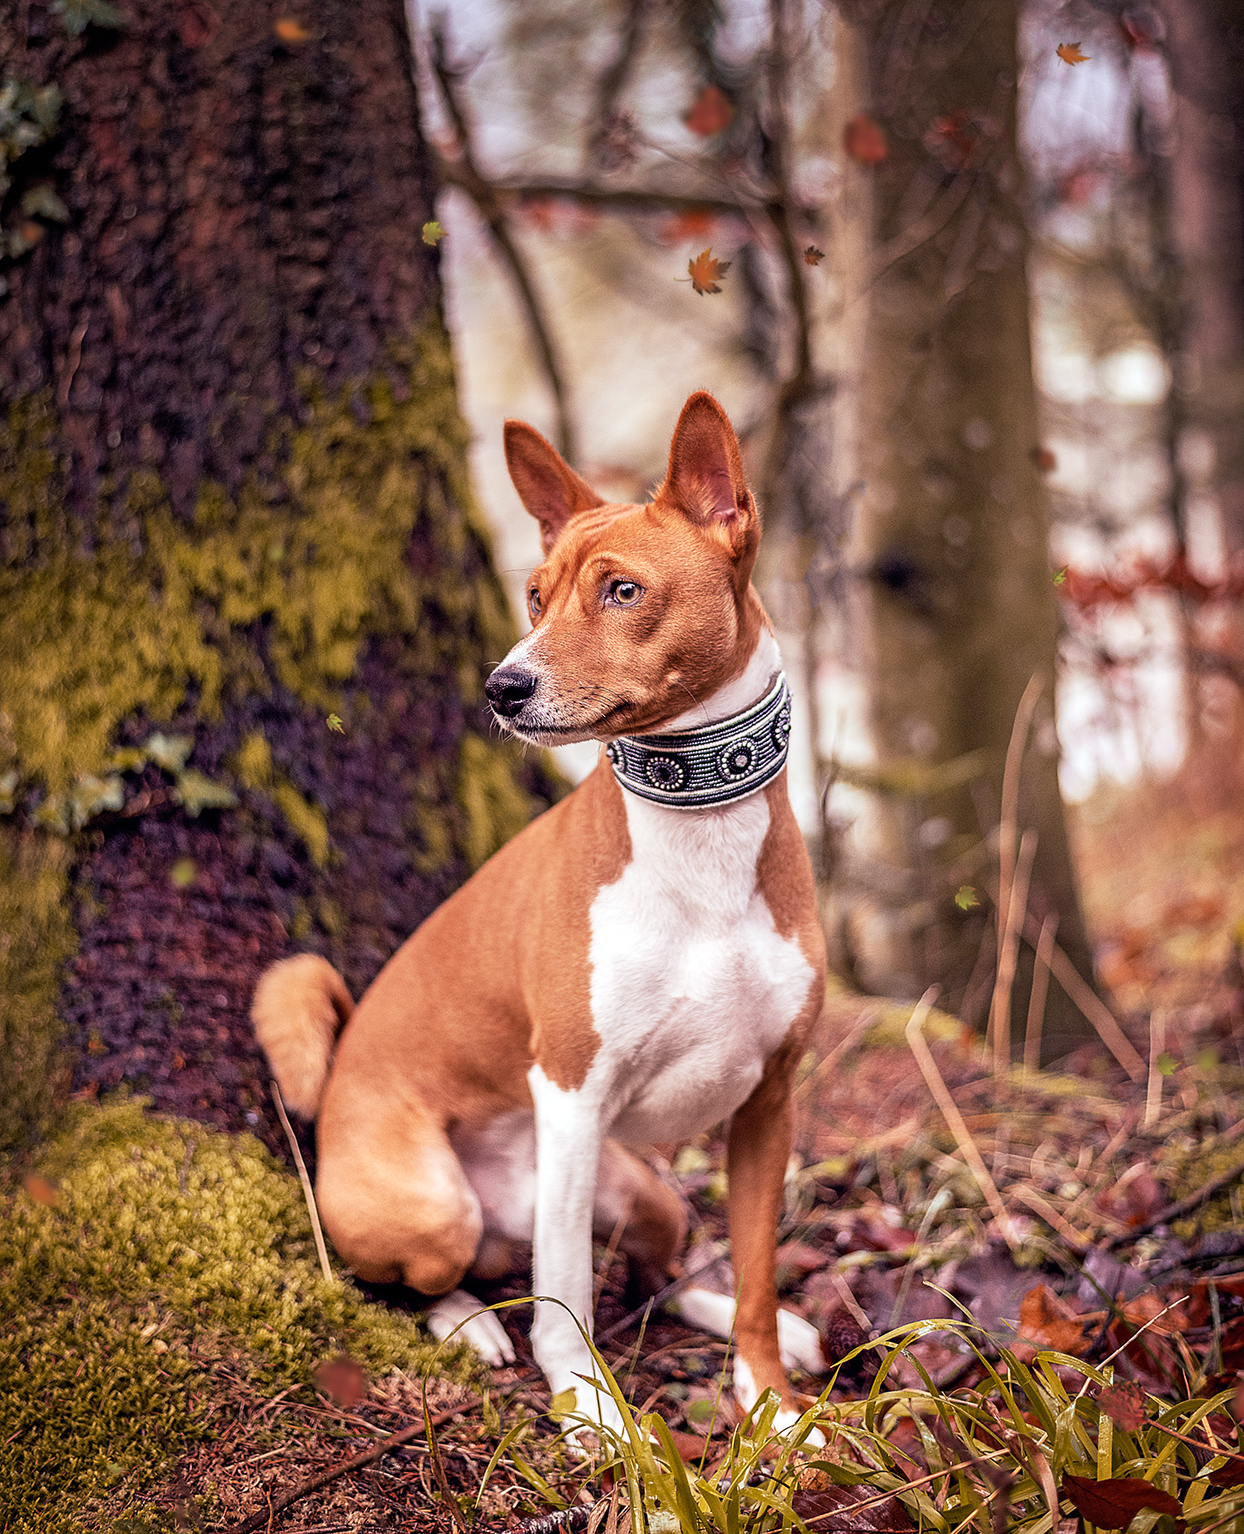 basenji wearing a decorative collar sitting on a mossy tree in a forest